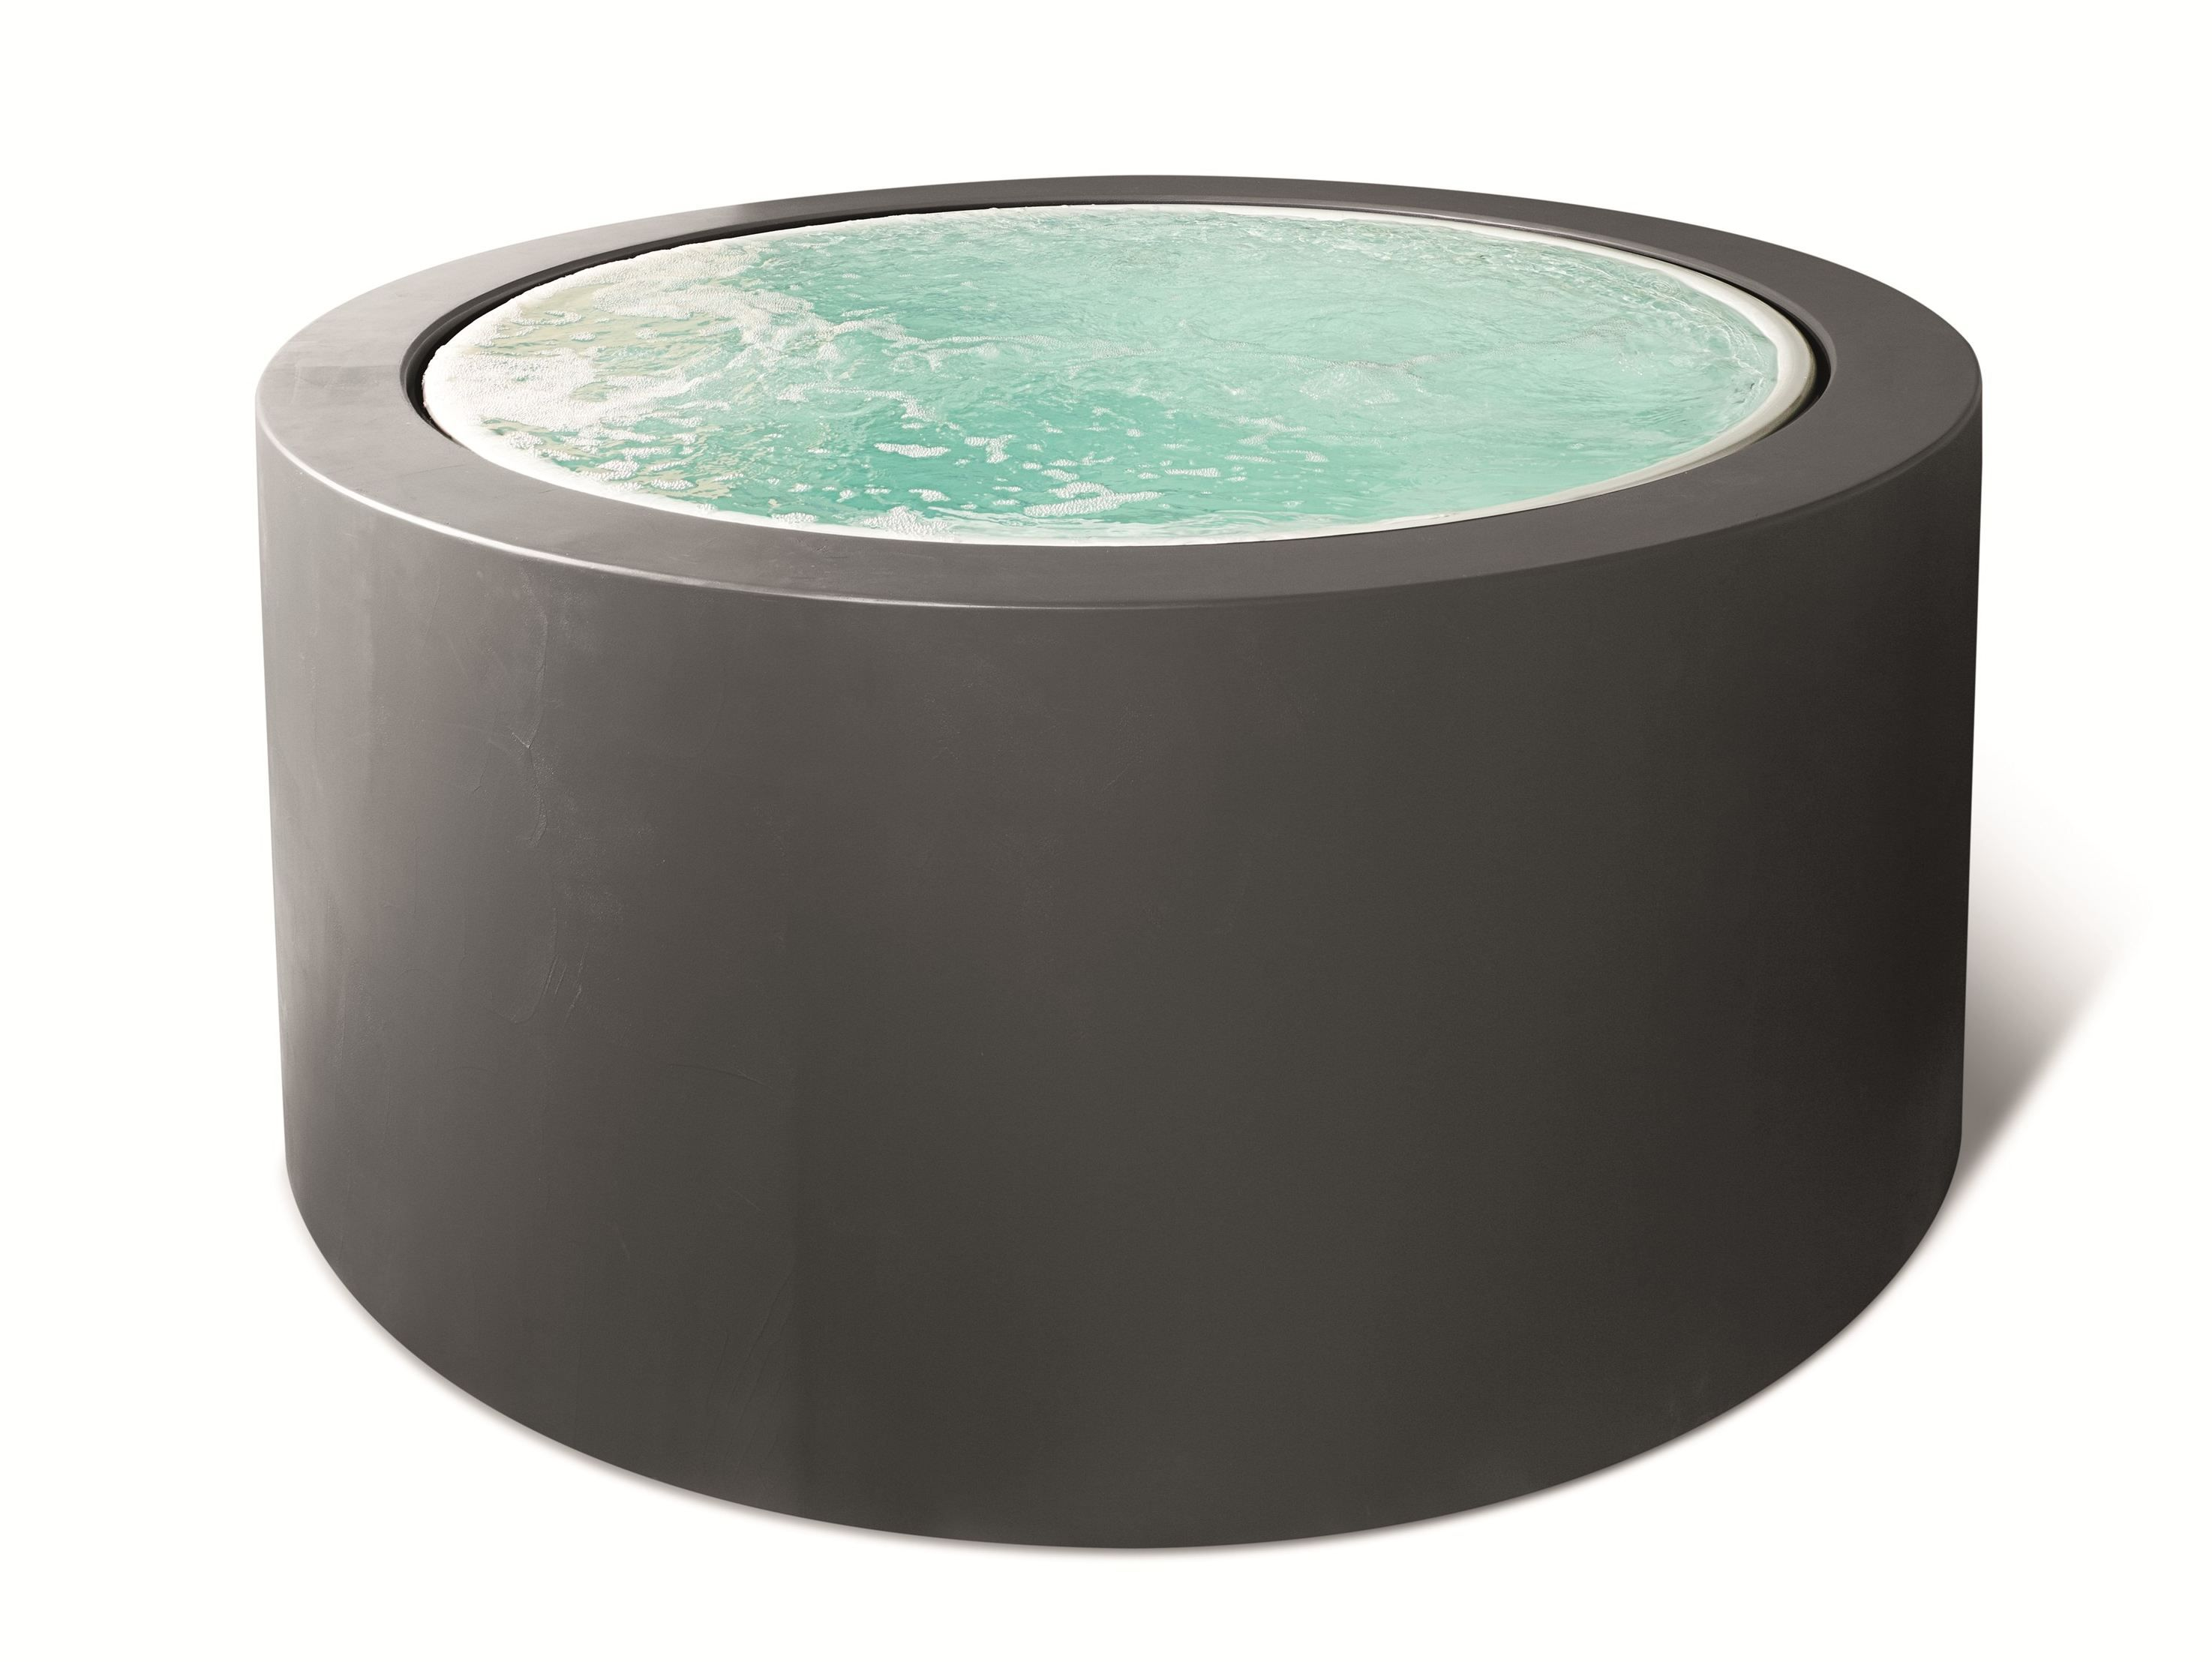 Whirlpool outdoor rund  Minipool by Kos free standing version slate gray finish | Holzhaus ...